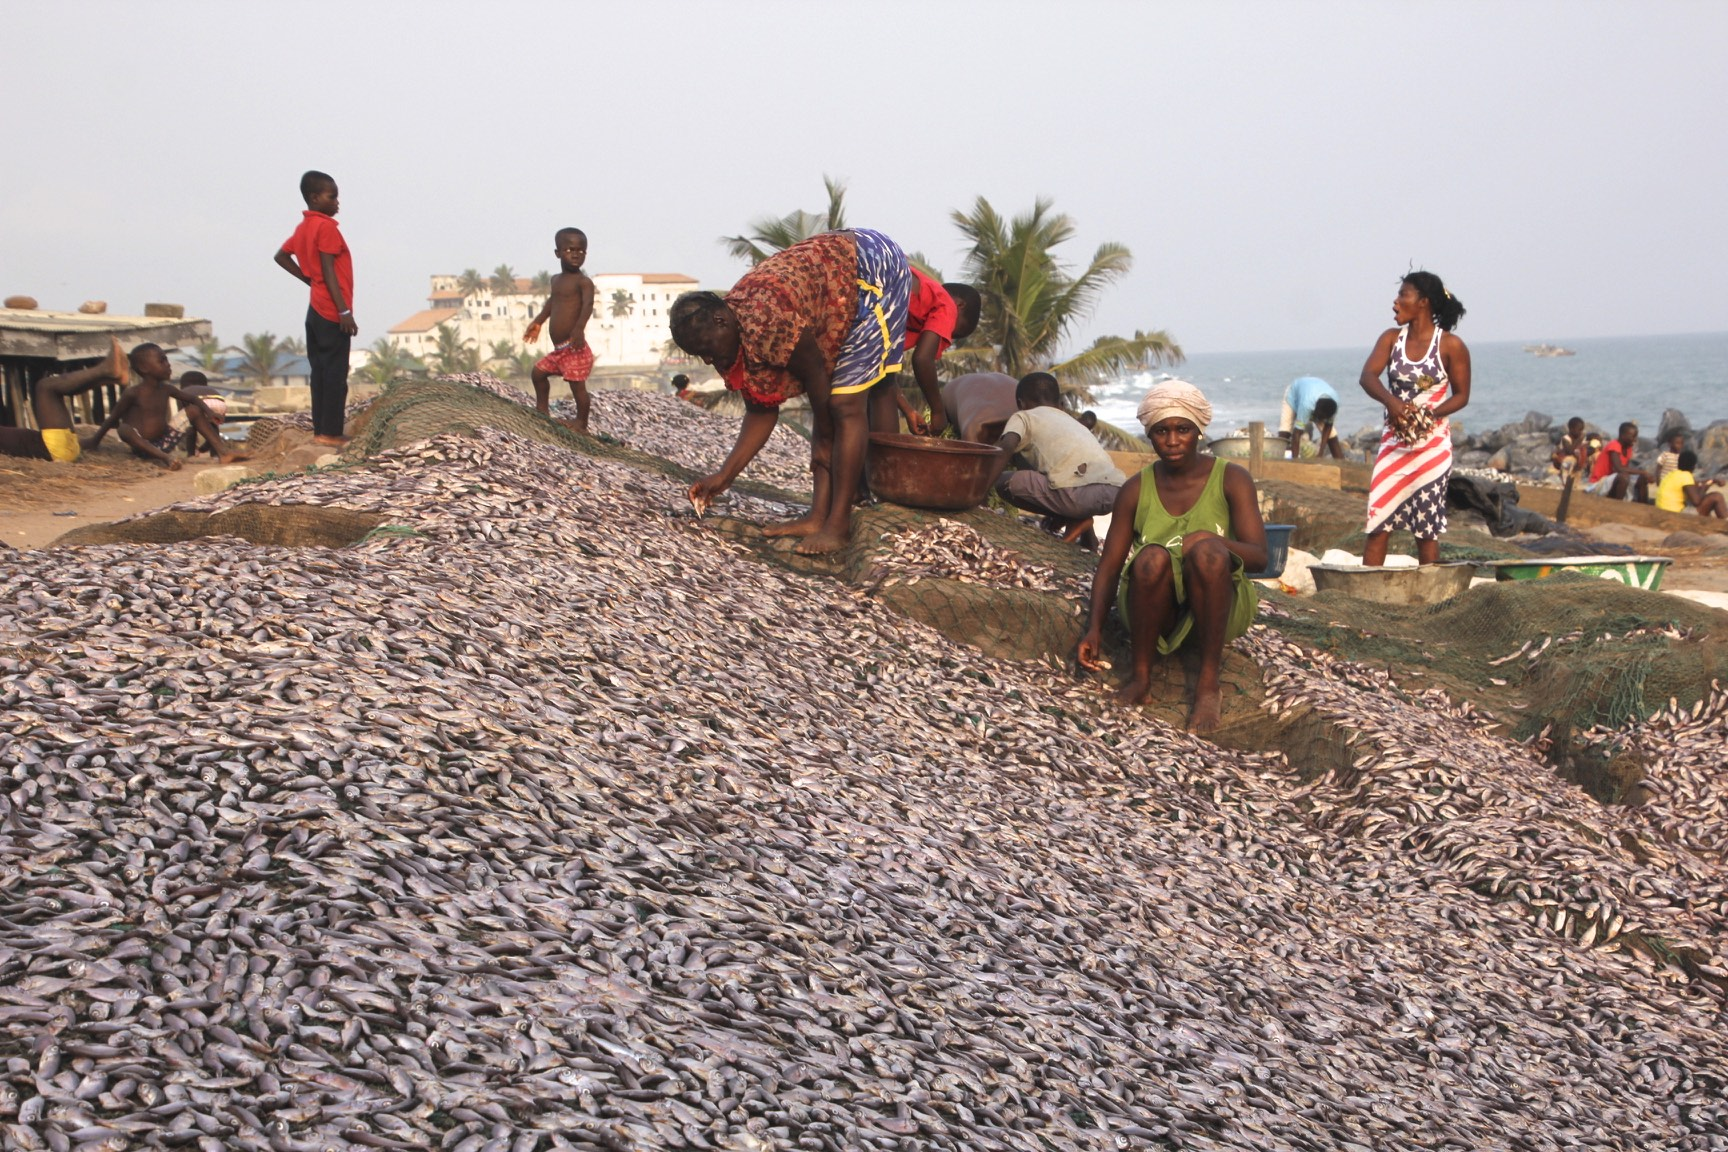 Drying fish in Elmina, Ghana; the Elmina slave castle is in the background